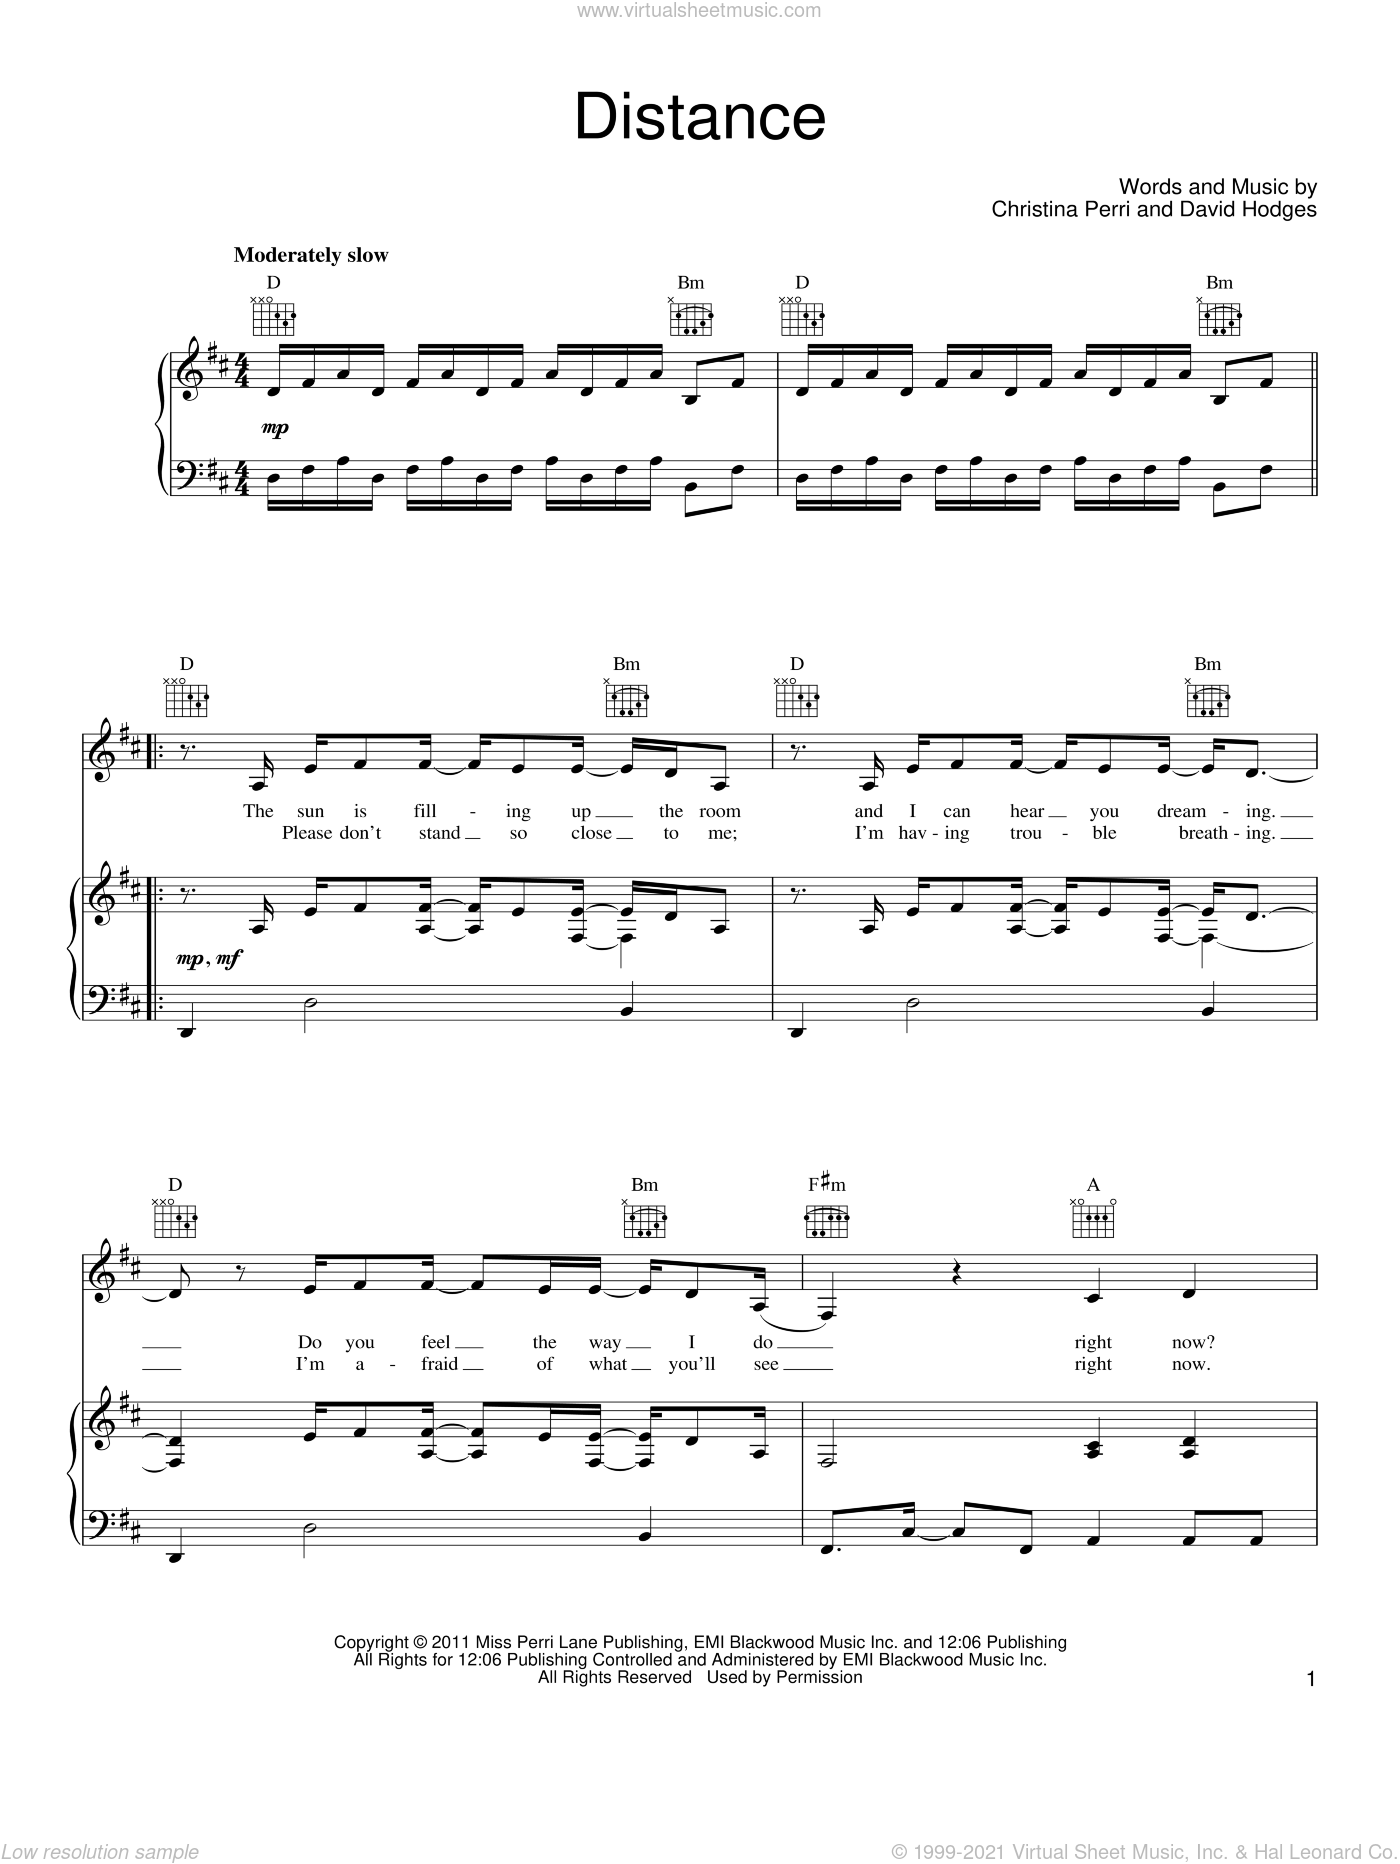 Distance sheet music for voice, piano or guitar by David Hodges